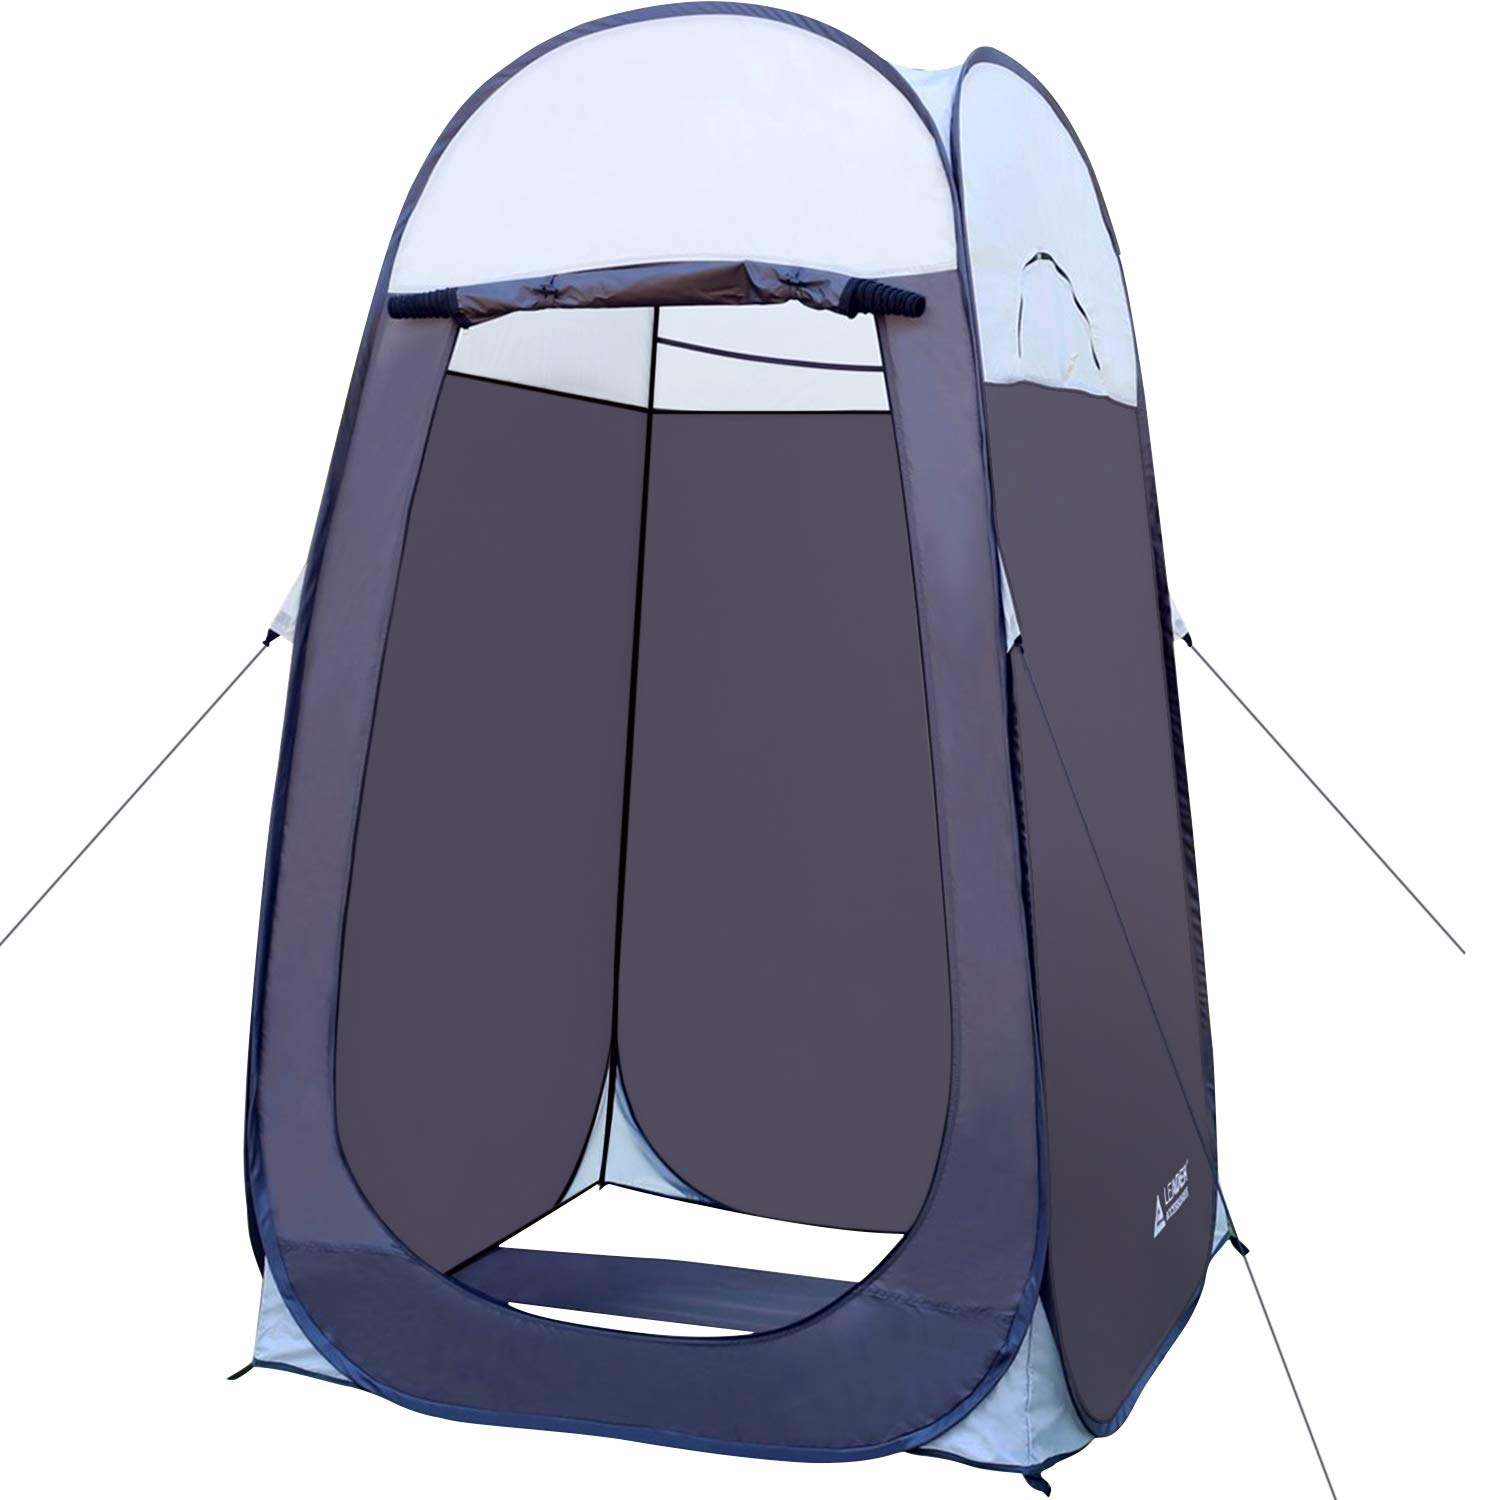 Leader Accessories Pop Up Shower Tent Dressing Changing Tent Pod Toilet Tent 4' x 4' x 78''(H) Big Size (1Grey) by Leader Accessories